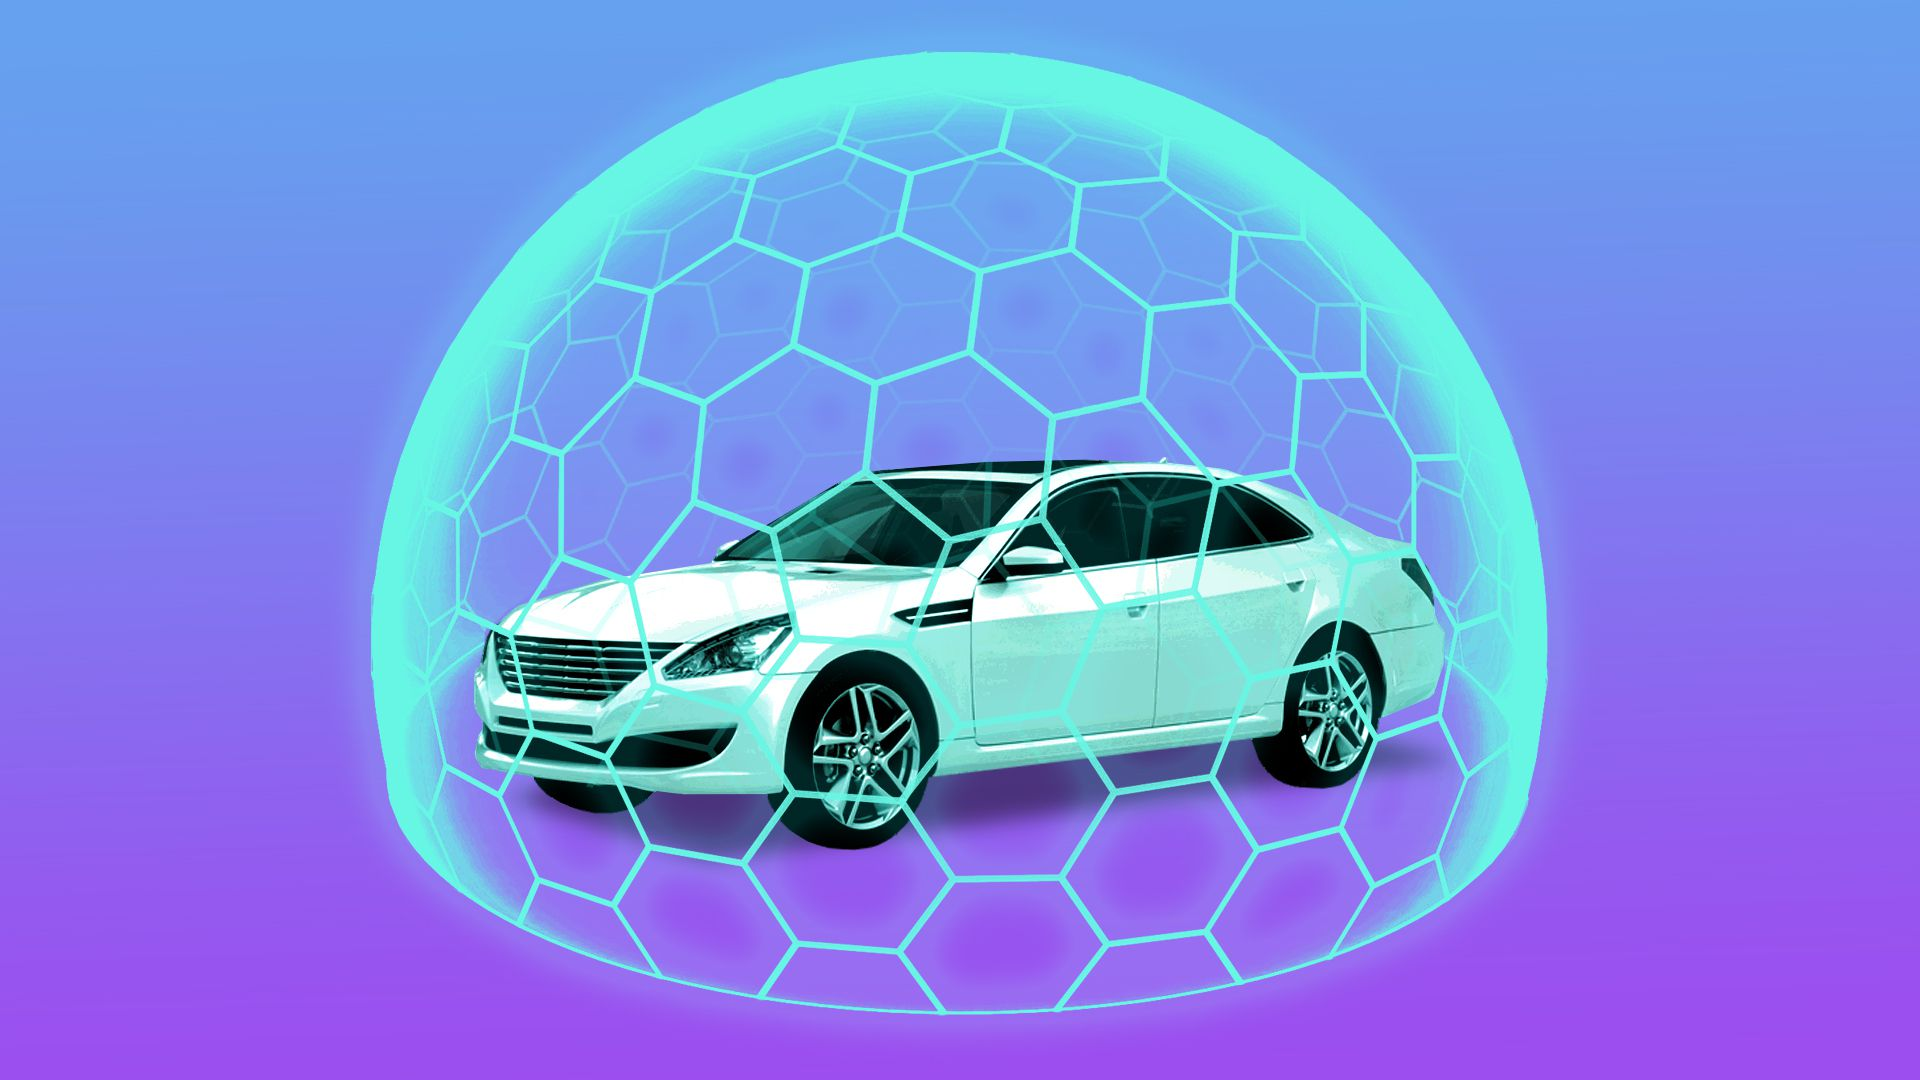 Illustration of car surrounded by artificial intelligence dome